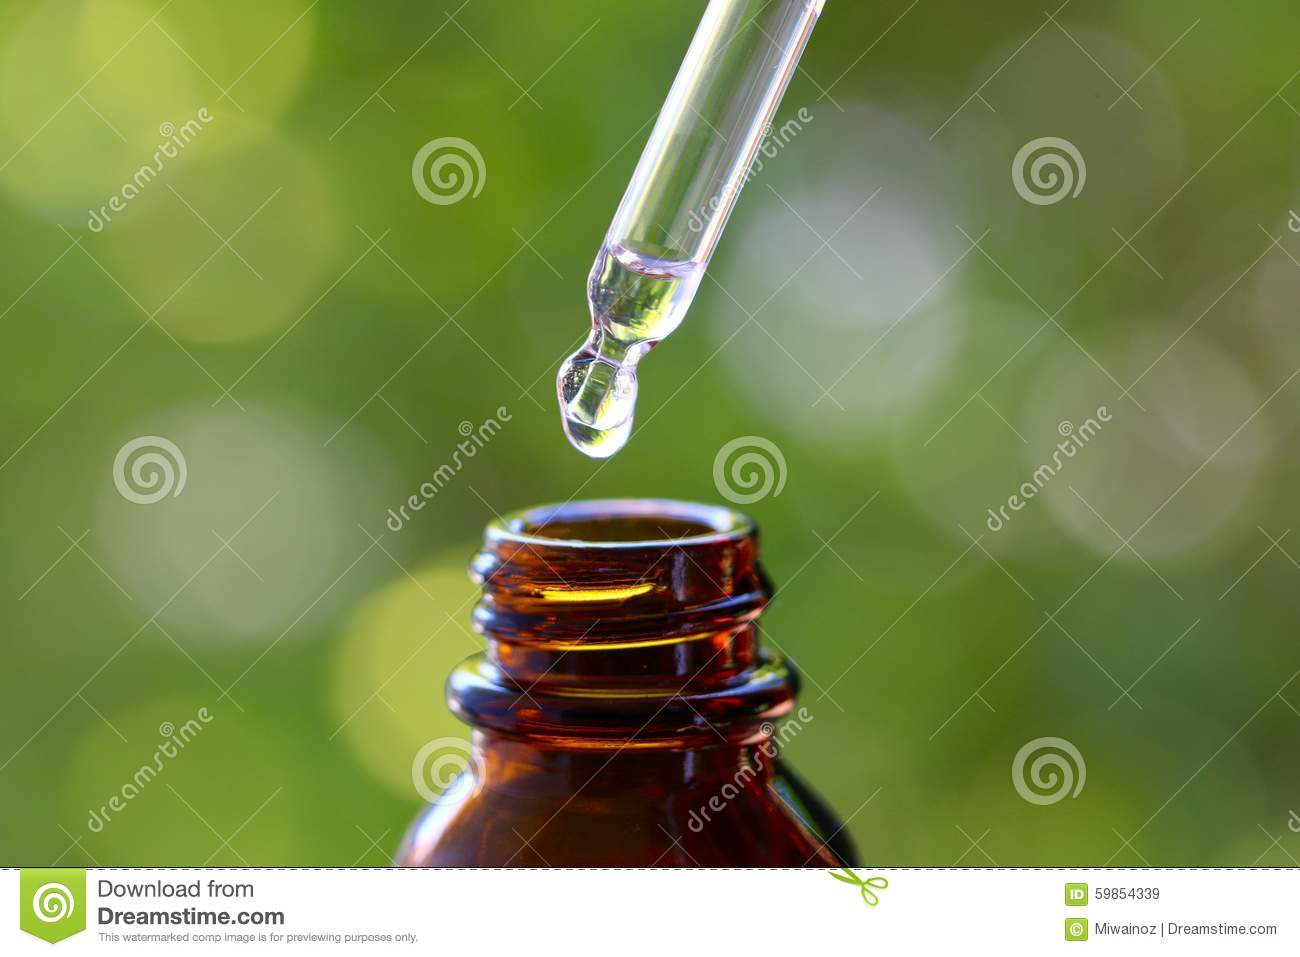 Dropper and Glass Bottle